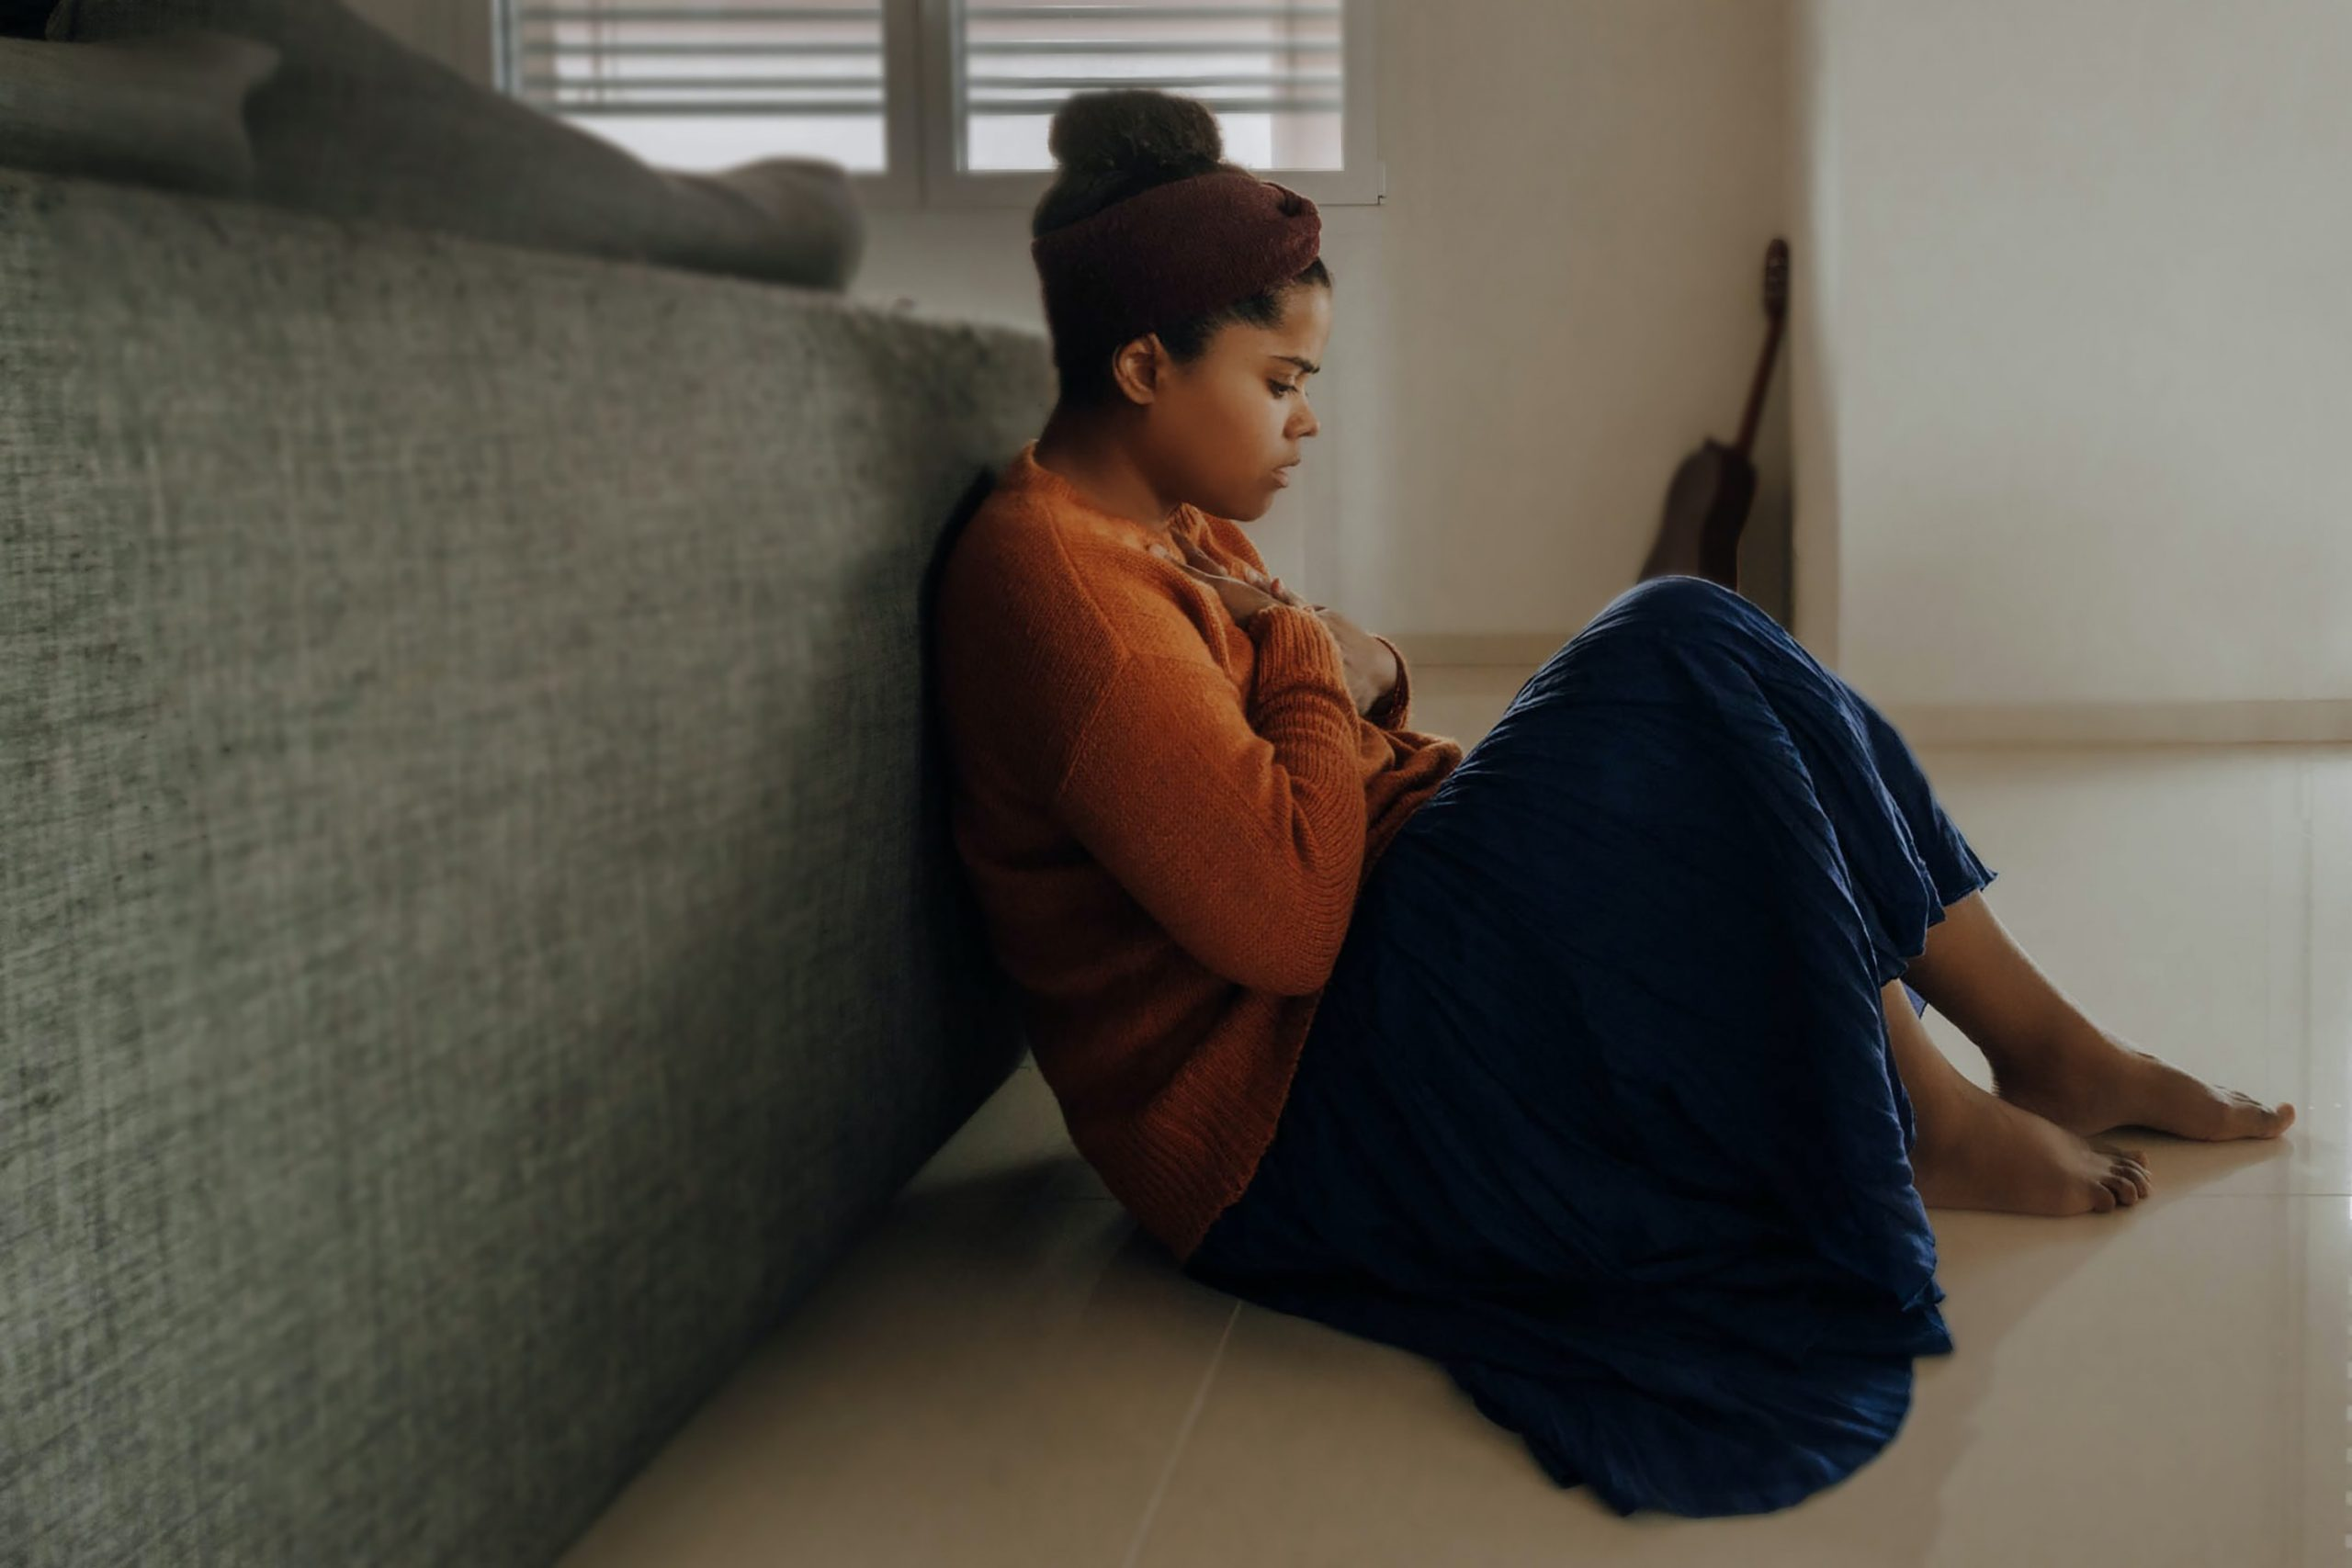 A young black woman sits on the floor leaning up against a sofa. She holds her hand to her chest and looks down. She is wrapped in a navy blanket and is wearing an orange long sleeved top.